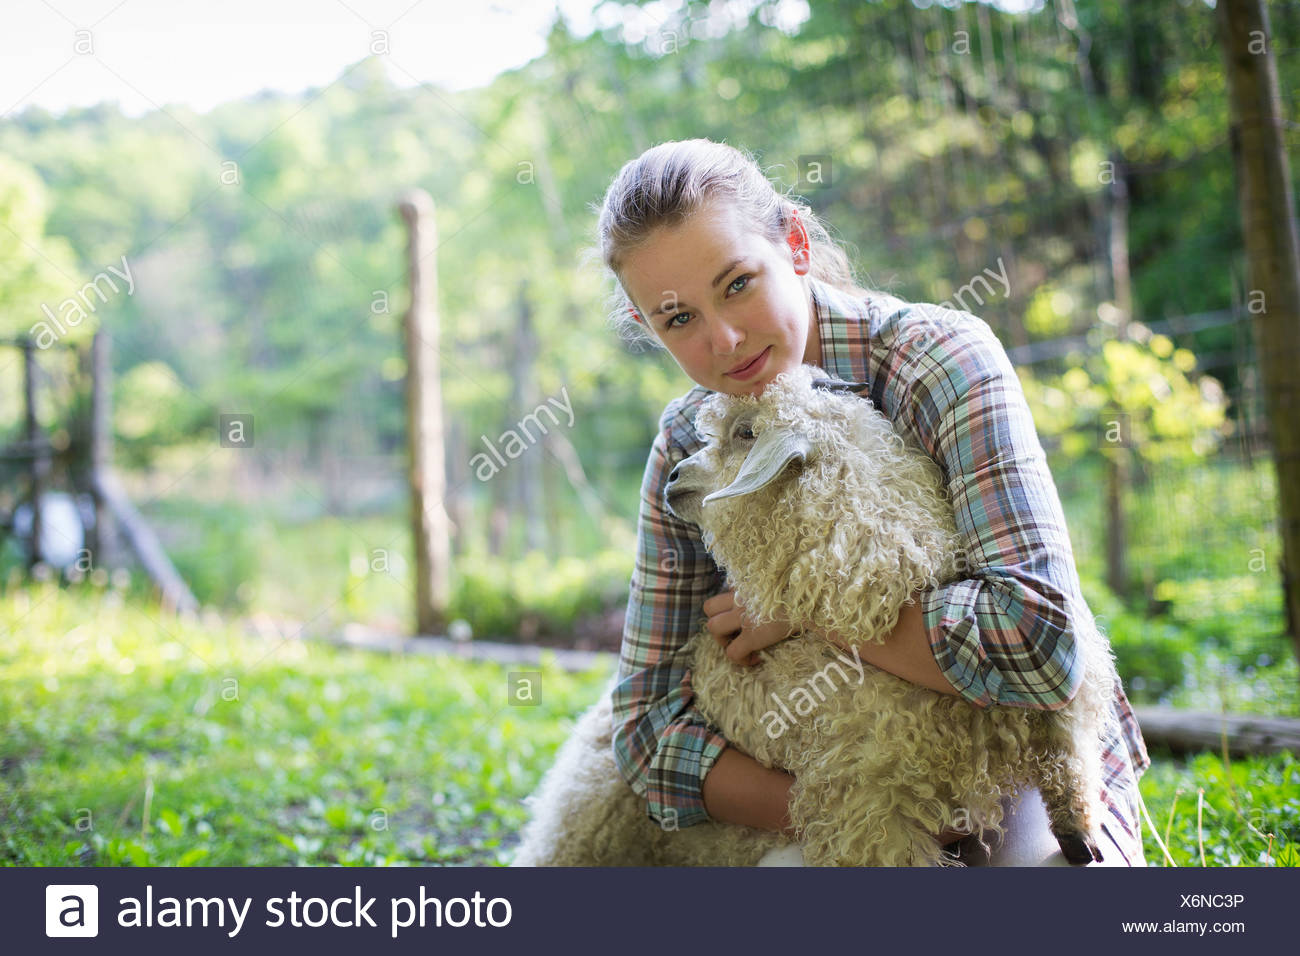 A teenager kneeling and putting her arms around a very curly haired angora goat. - Stock Image